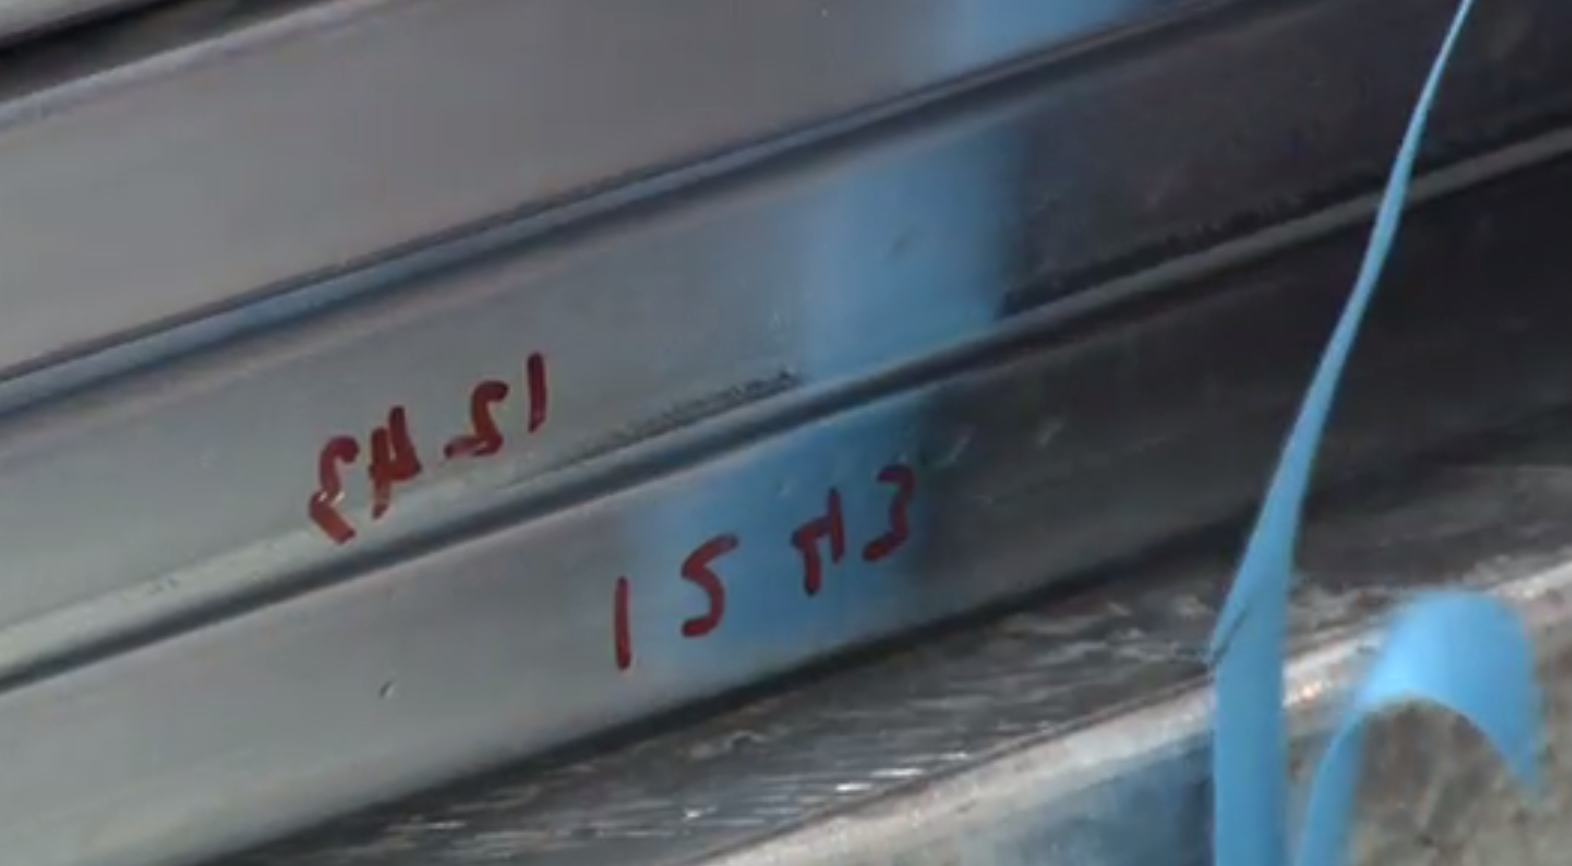 The serial numbers are written onto the parts